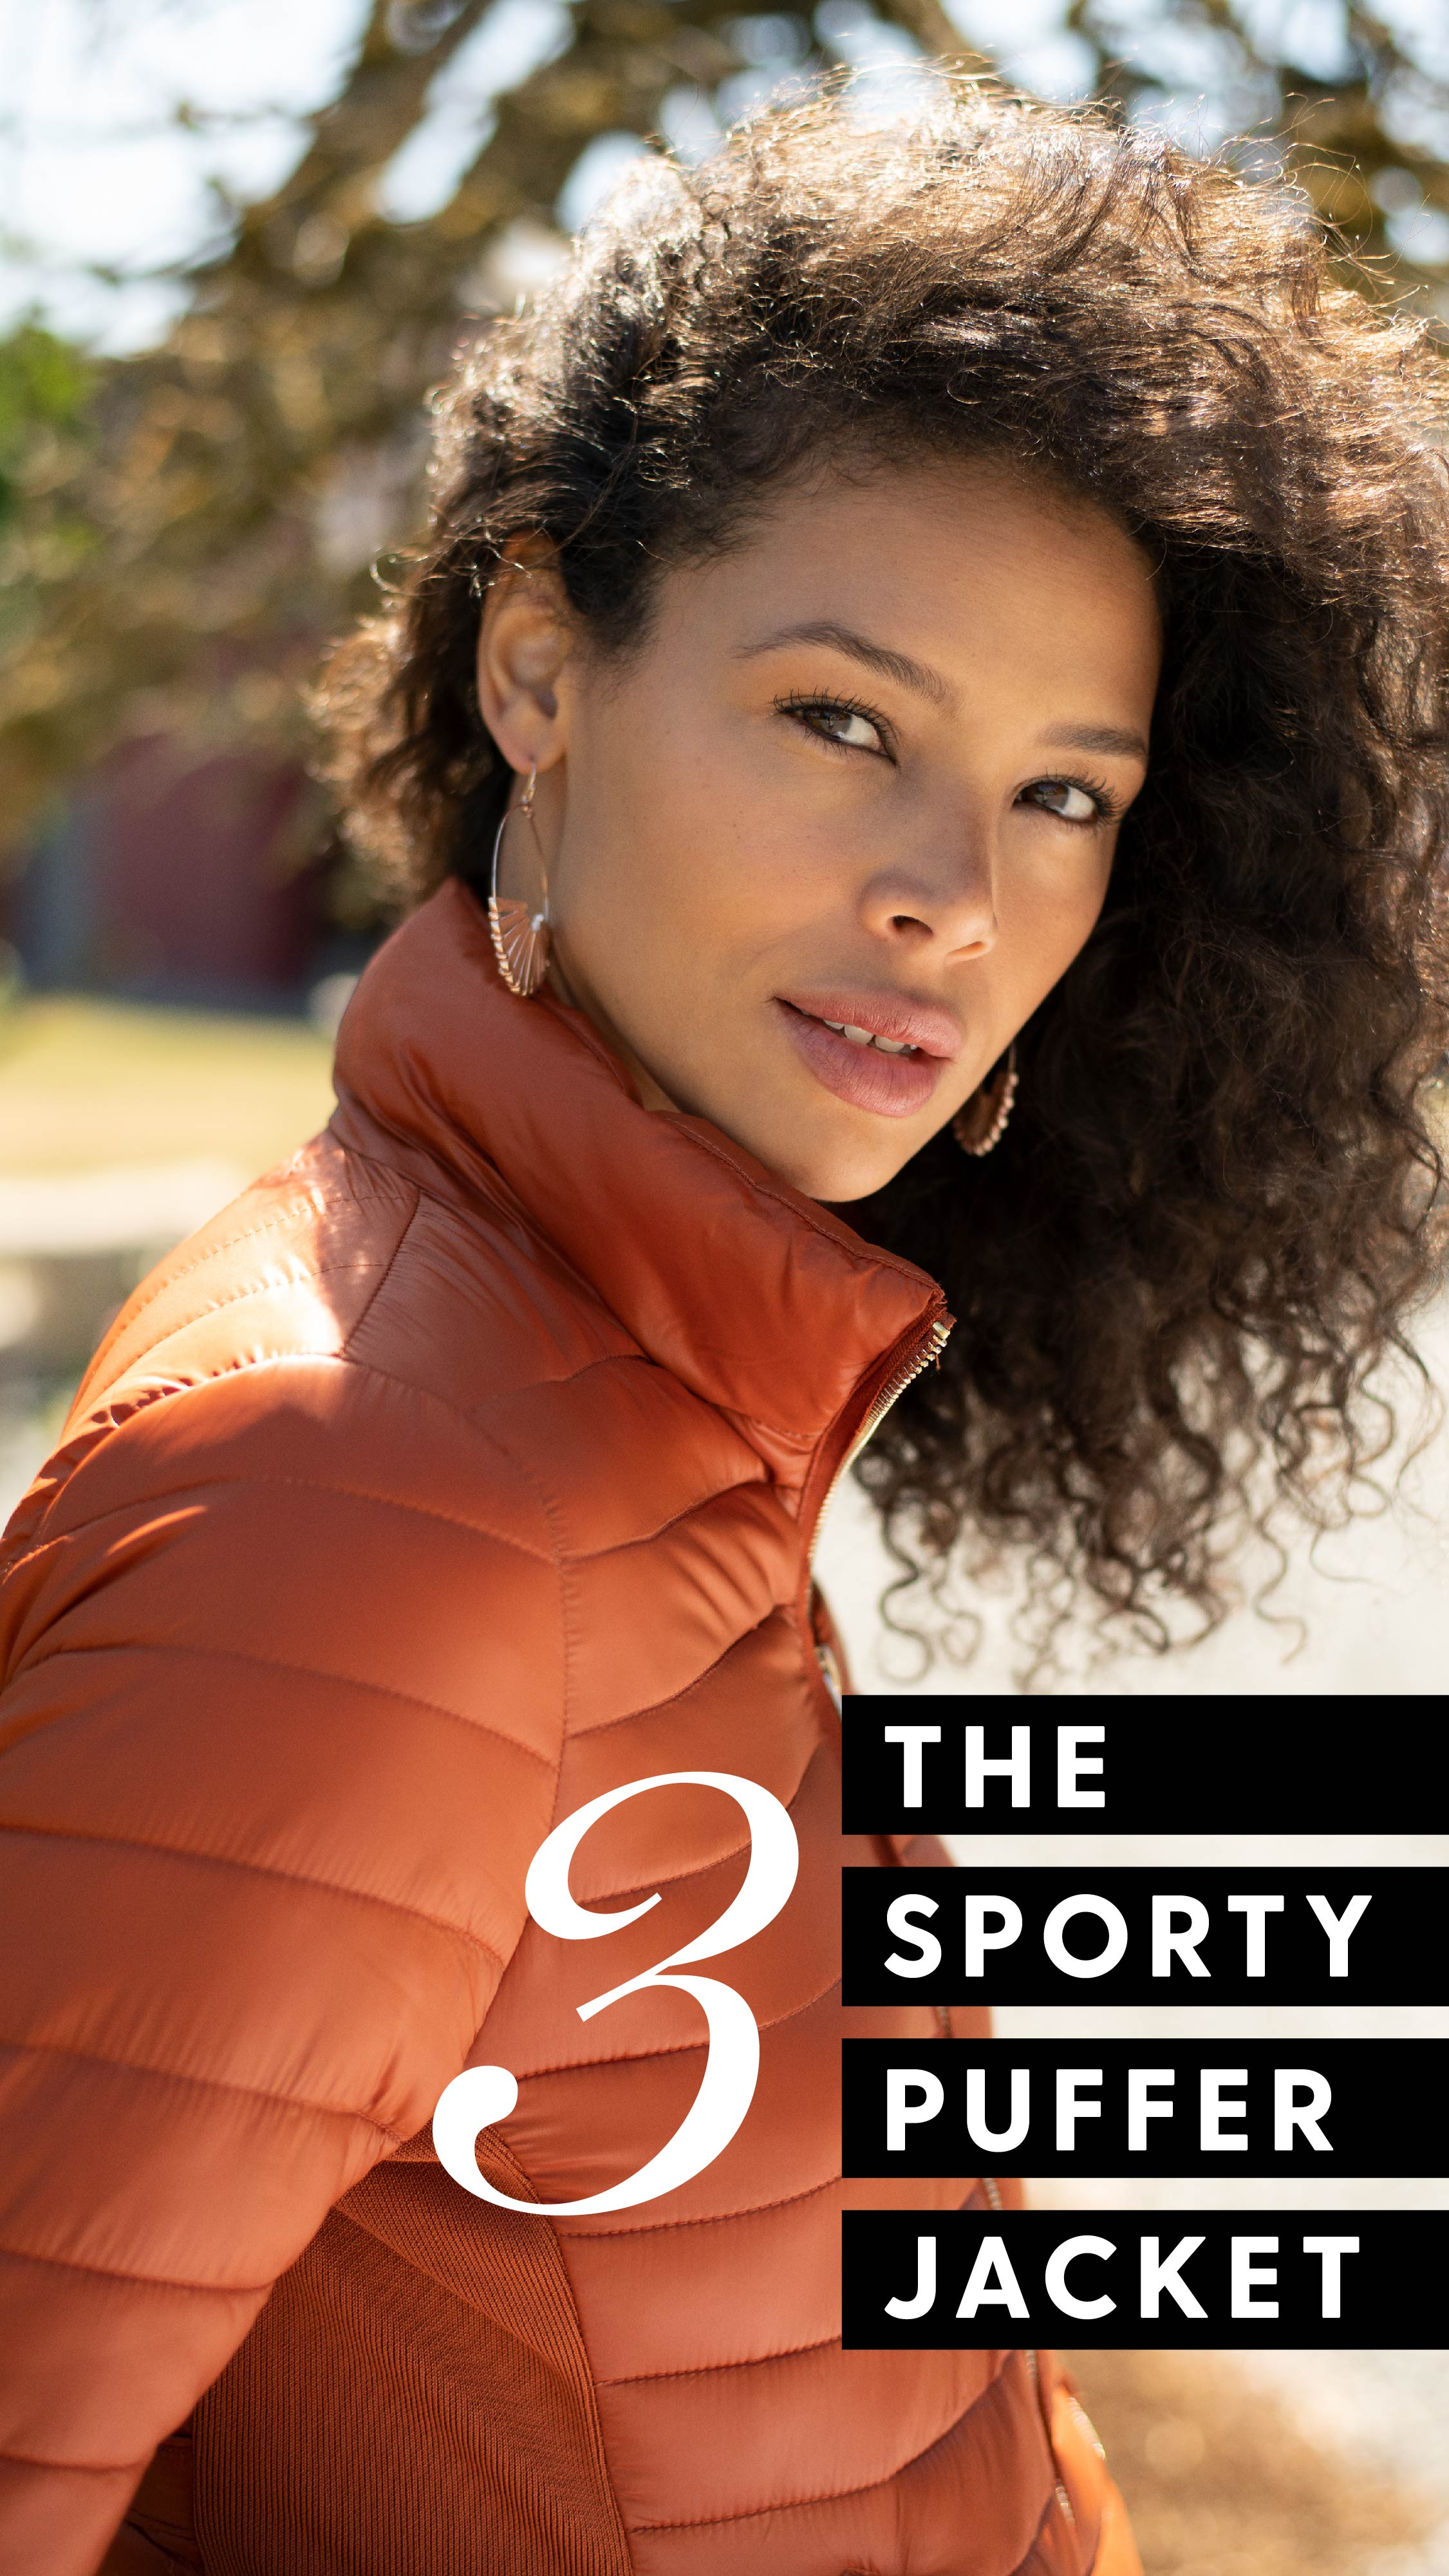 Style 3 - The Sporty puffer jacket. Close up of women wearing a burnt orange puffer jacket.